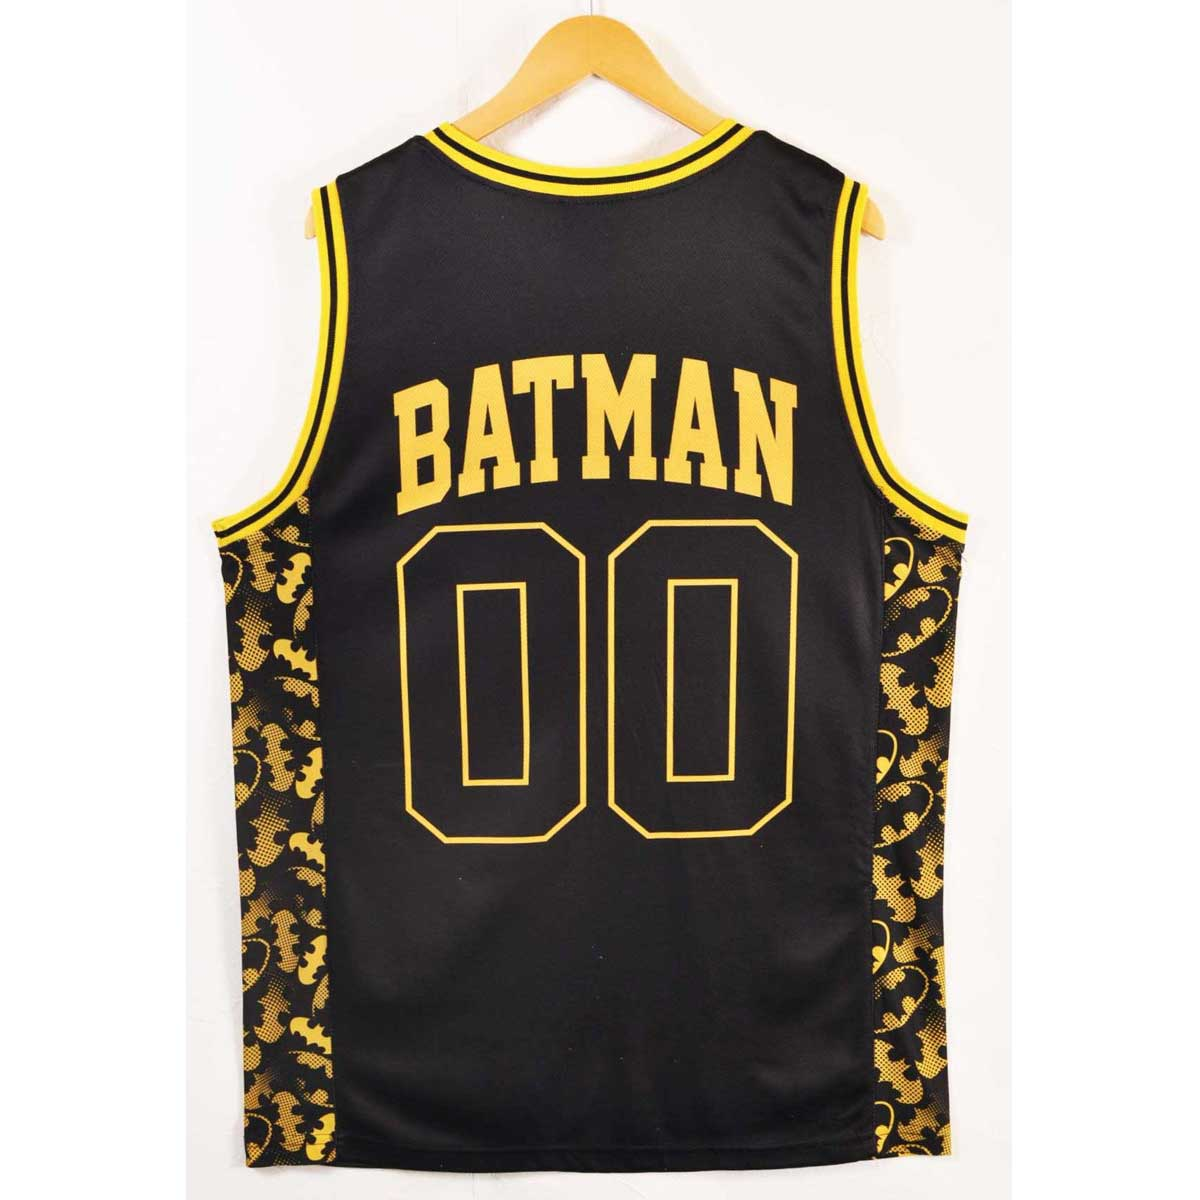 508868333ab ... DC COMIC BATMAN battement basketball tank top-style mesh tank top black  X yellow numbering ...